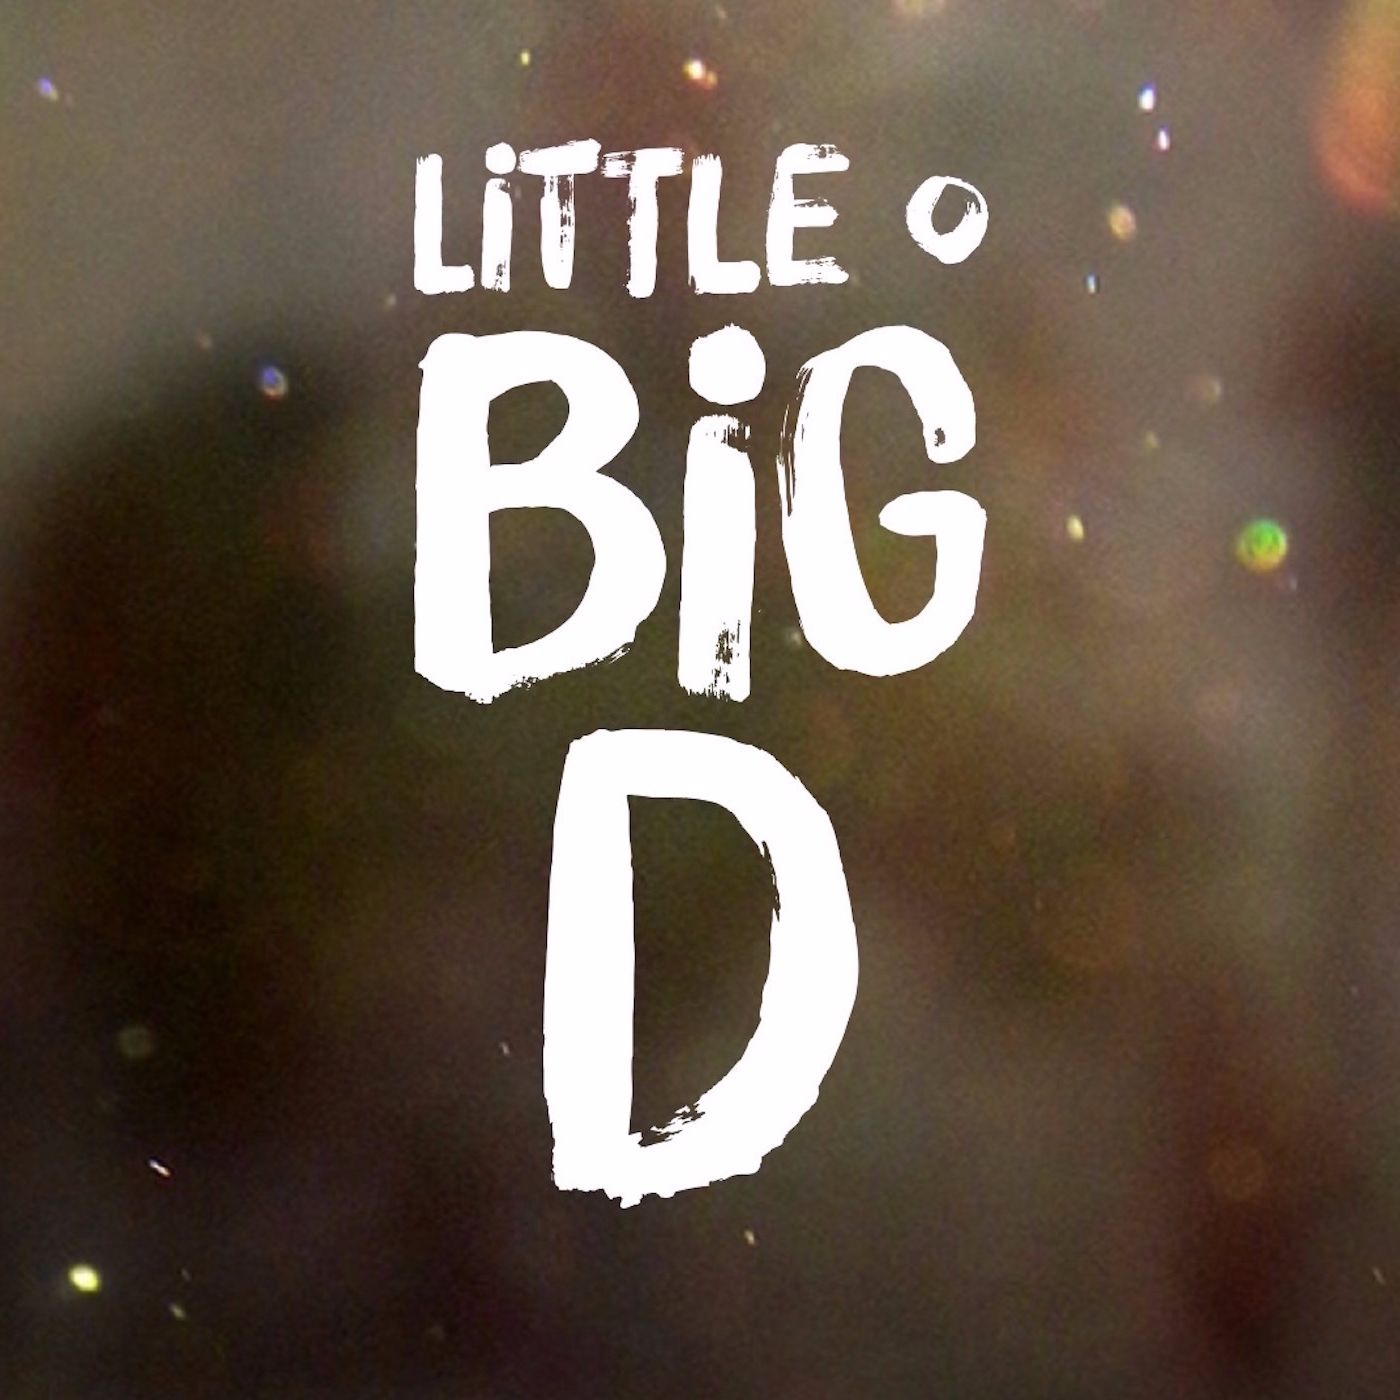 Little o Big D Podcast | Facebook now! What's trending?